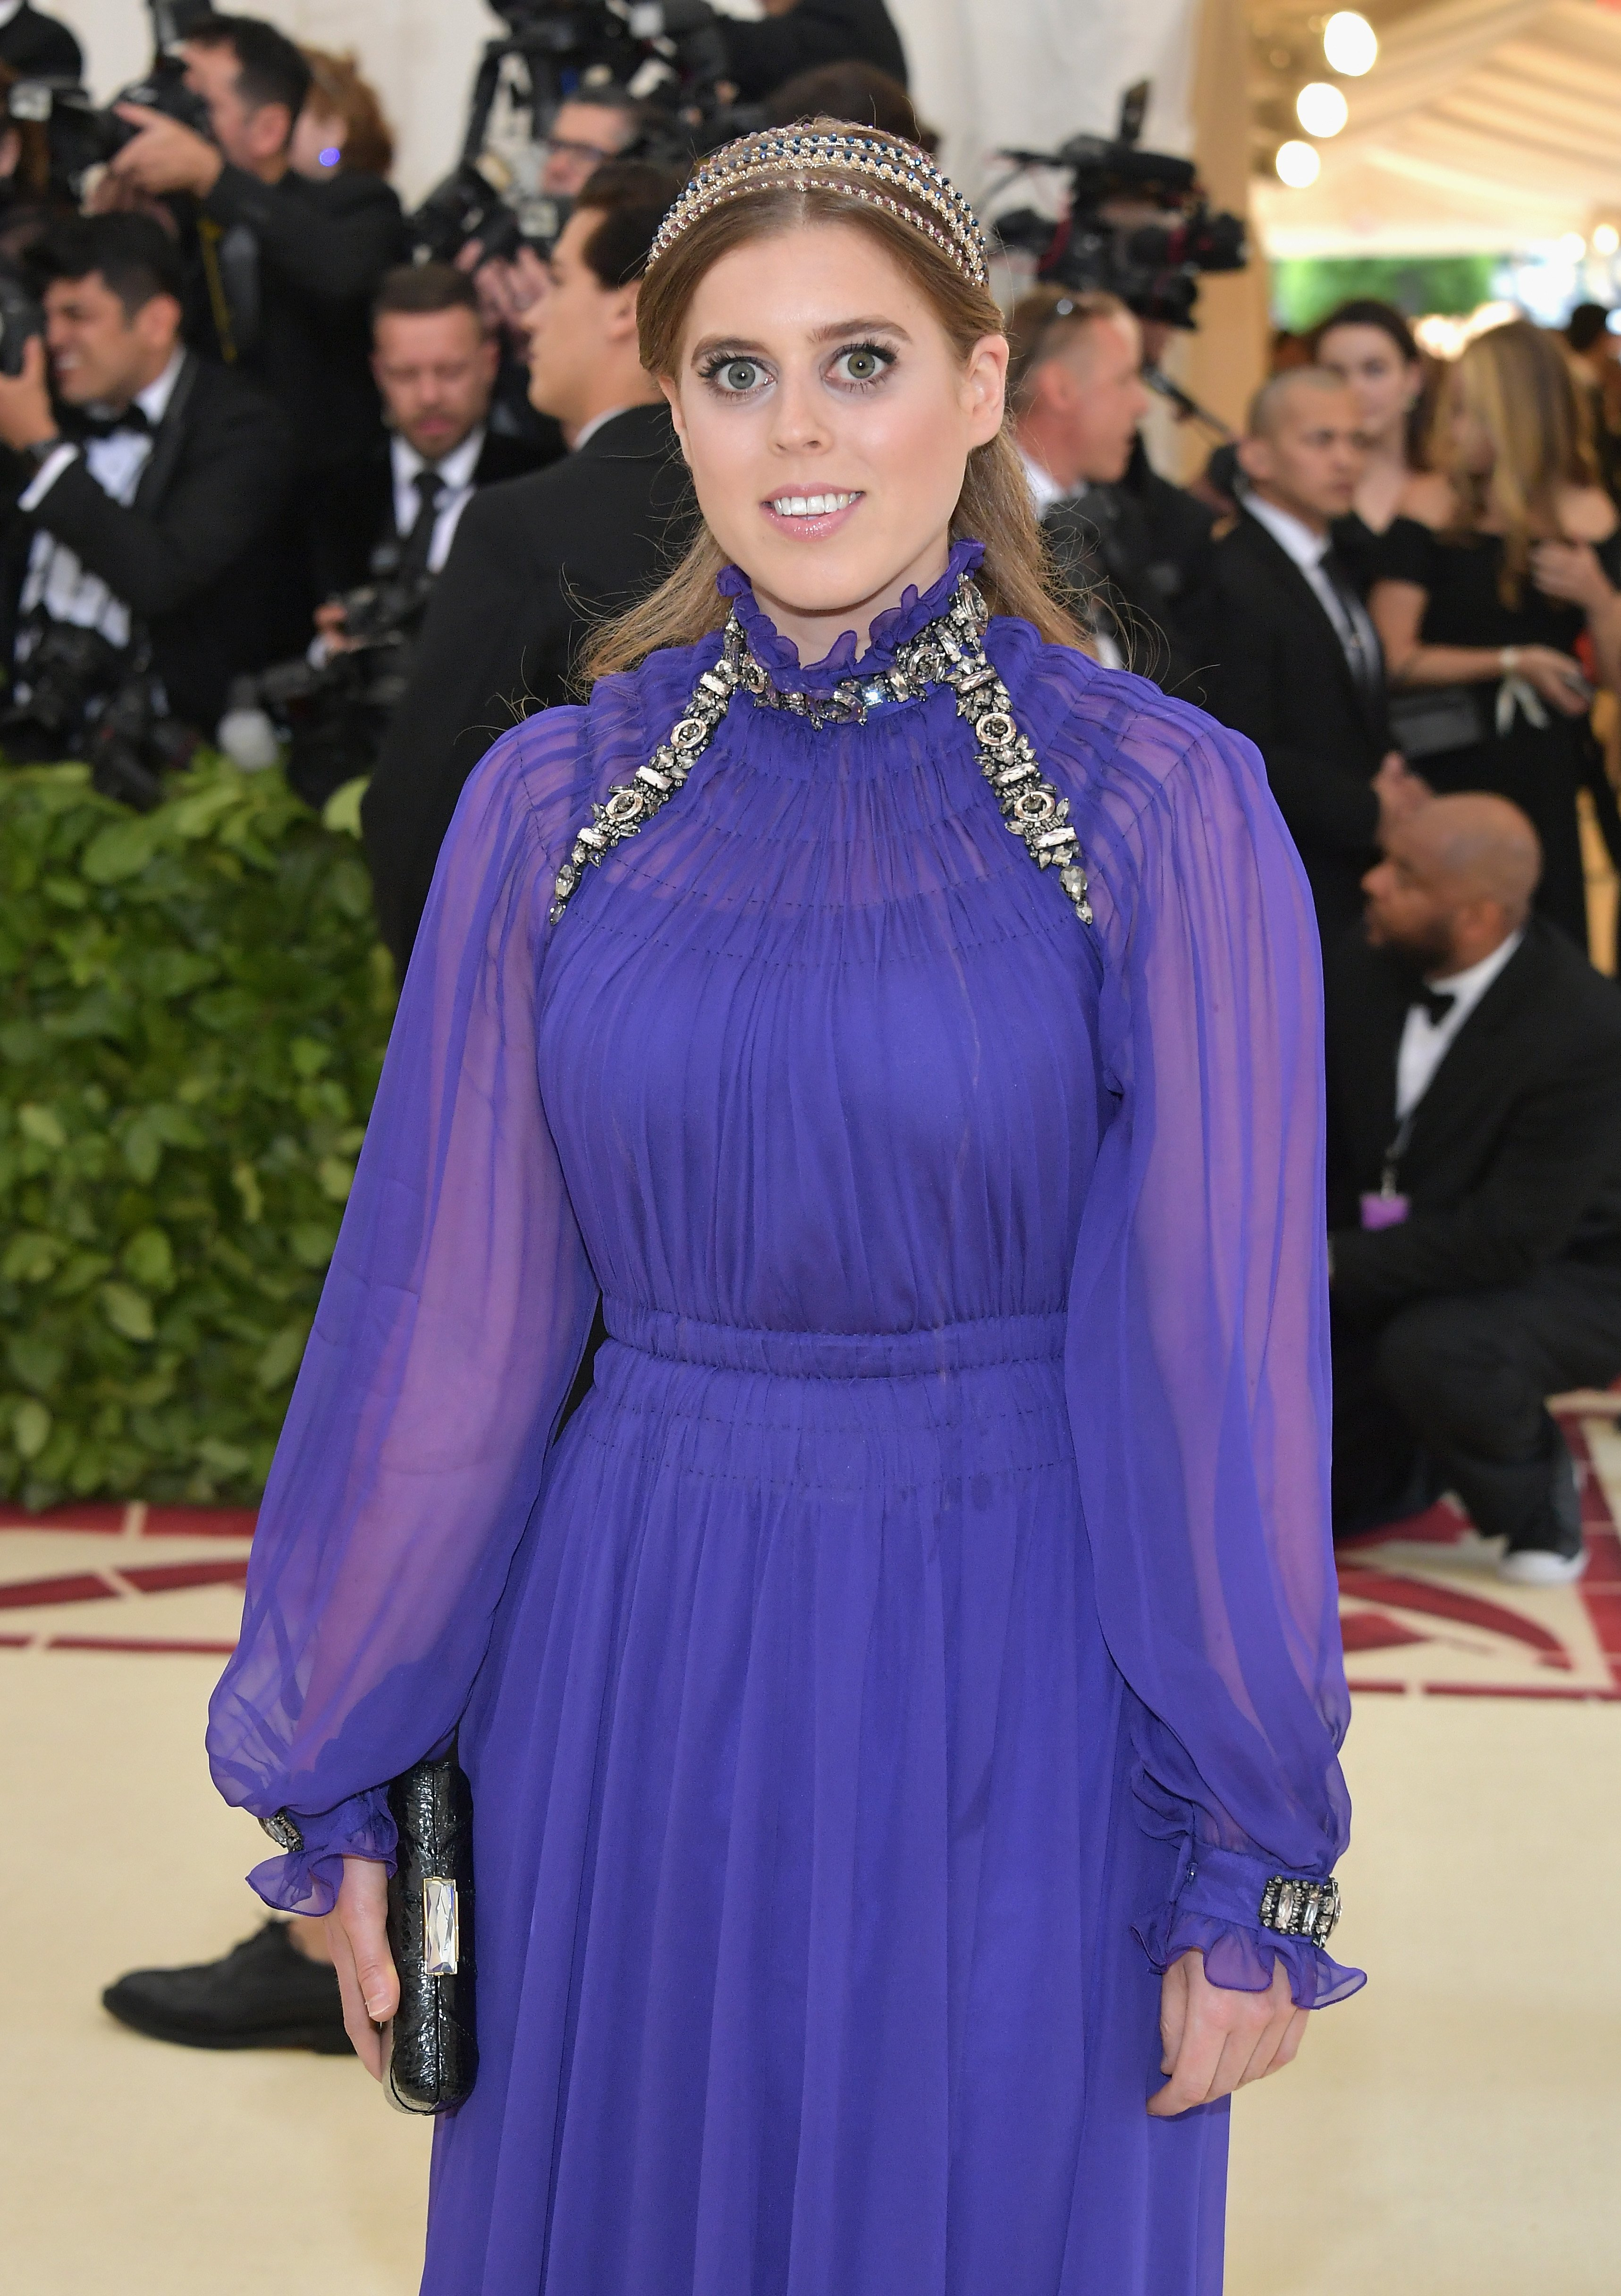 Princess Beatrice of York attends the Heavenly Bodies: Fashion & The Catholic Imagination Costume Institute Gala at The Metropolitan Museum of Art on May 7, 2018 in New York City. | Source: Getty Images